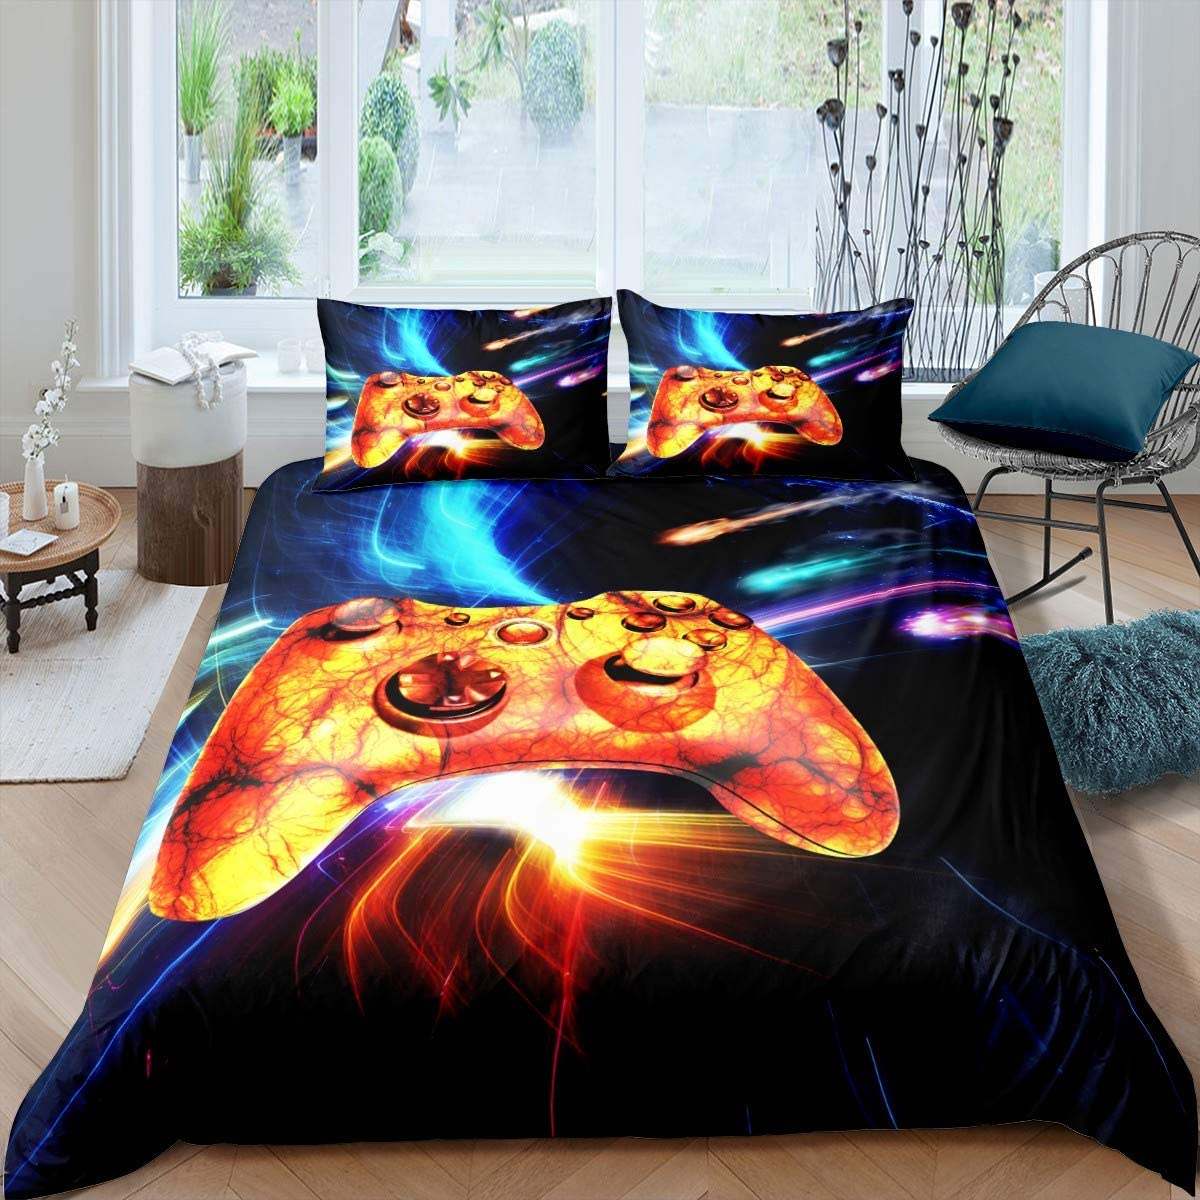 Gamepad Bedding Set Video Game Controller Comforter Cover for Kids Boys Girls Teens 3D Marble Gamepad Duvet Cover Modern Gamer Colorful Meteor Bedspread Cover Room Decor Quilt Cover Twin Size